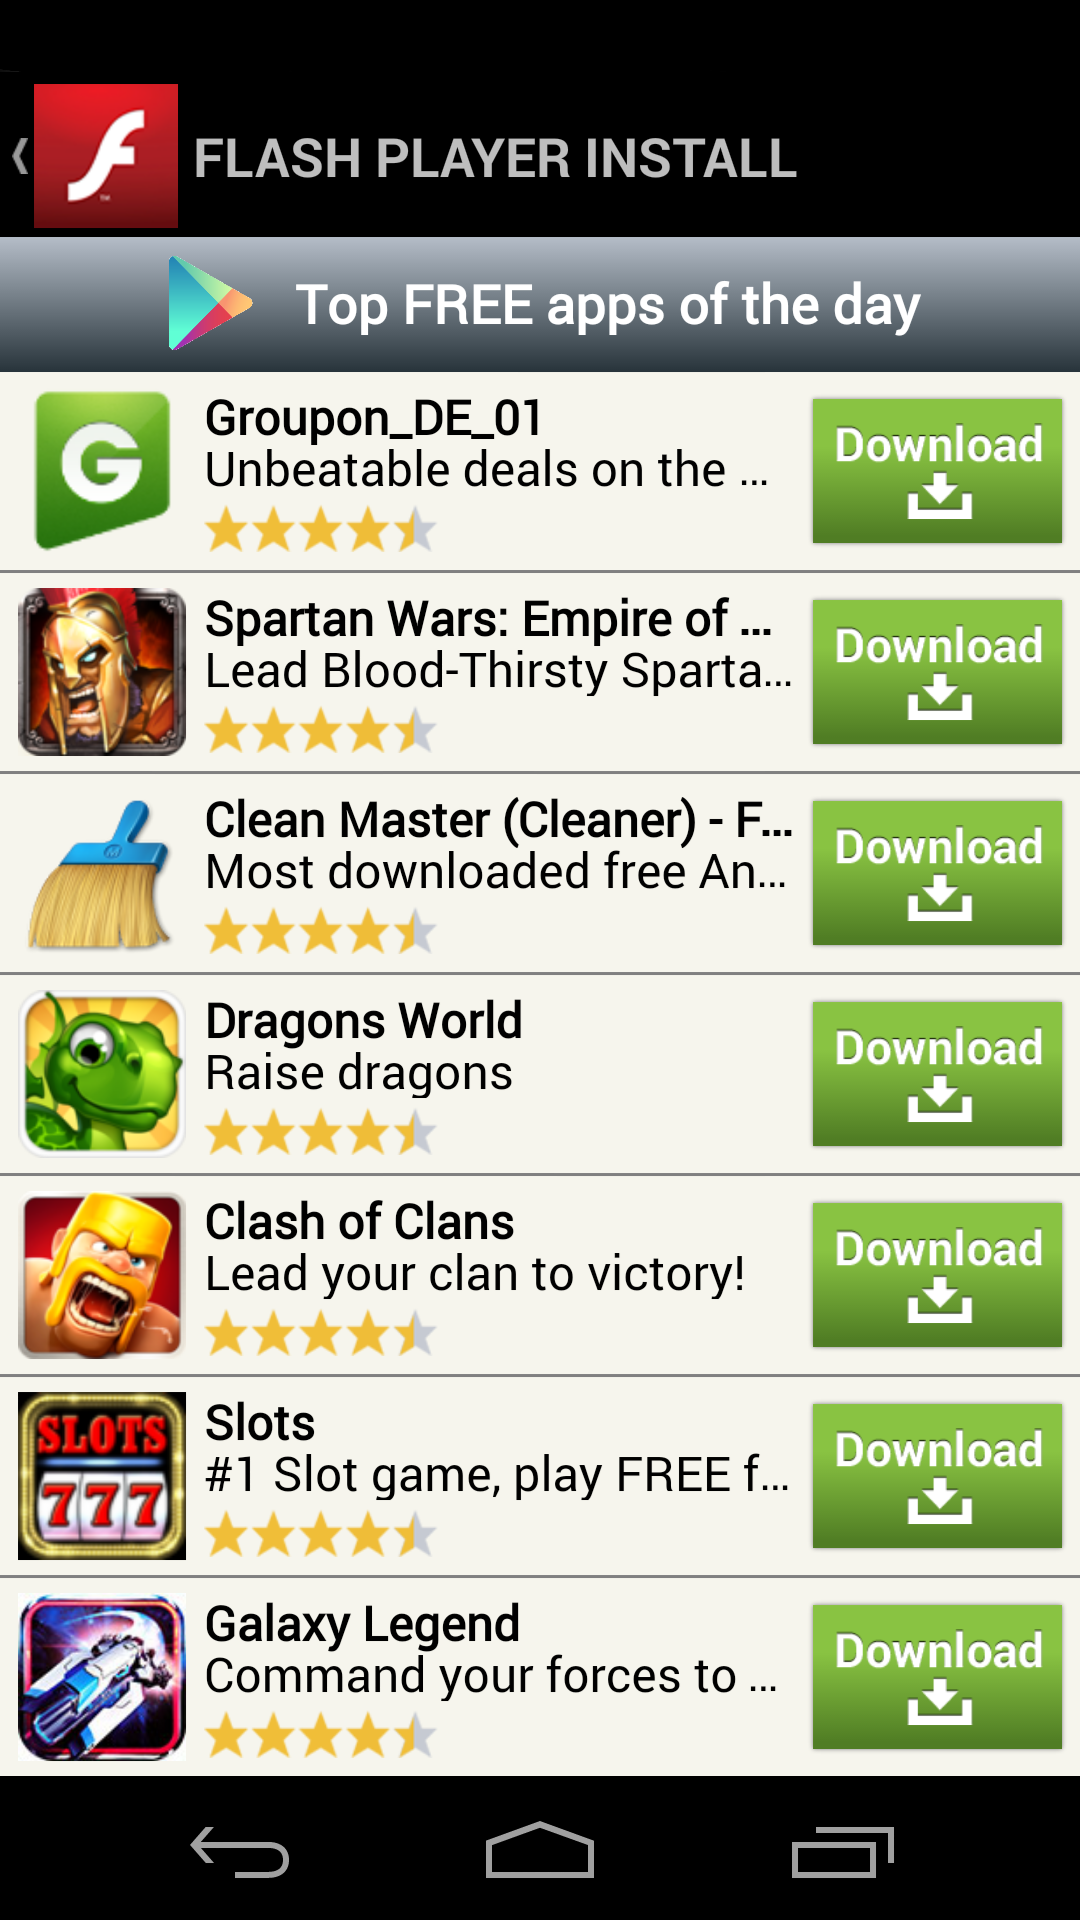 Worth looking again: fake Flash Player apps in Google Play